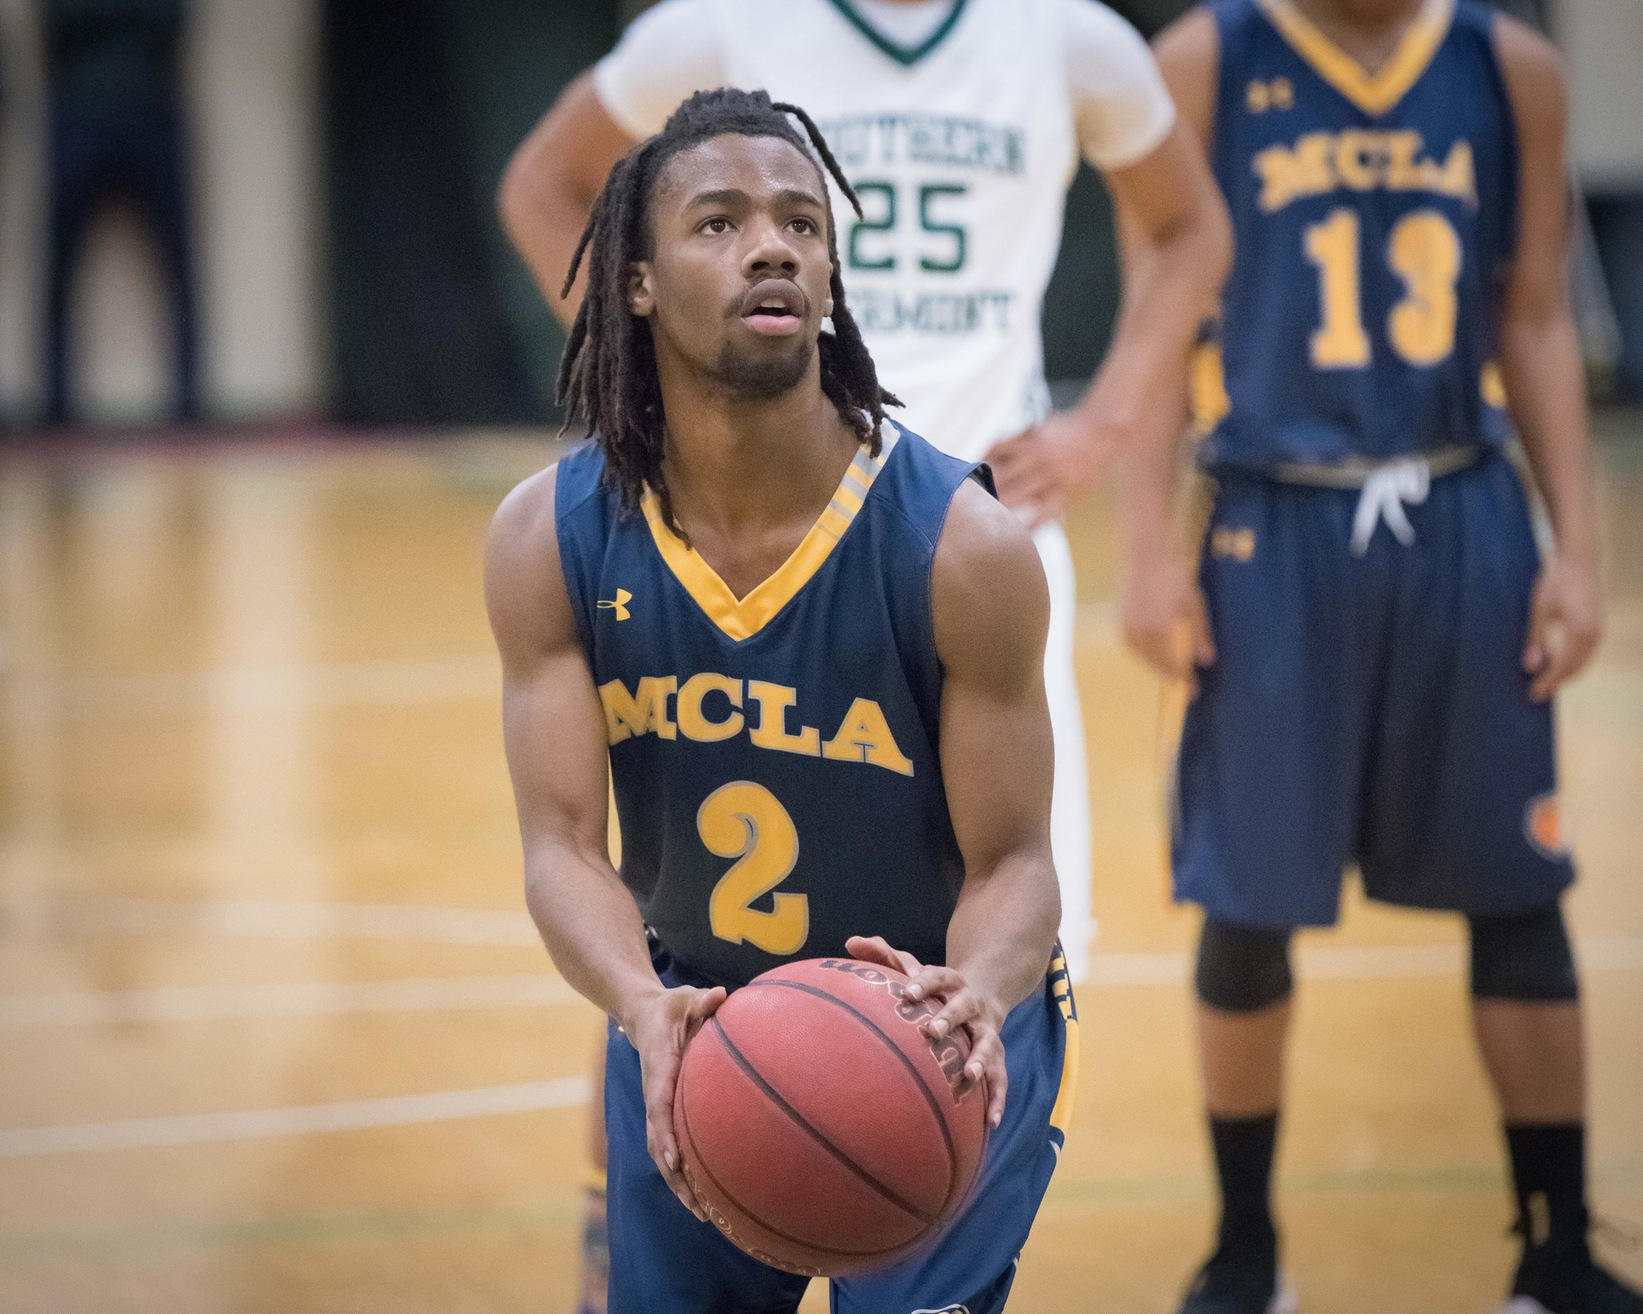 Men's Basketball clamps down on Framingham State to earn 58-40 road win